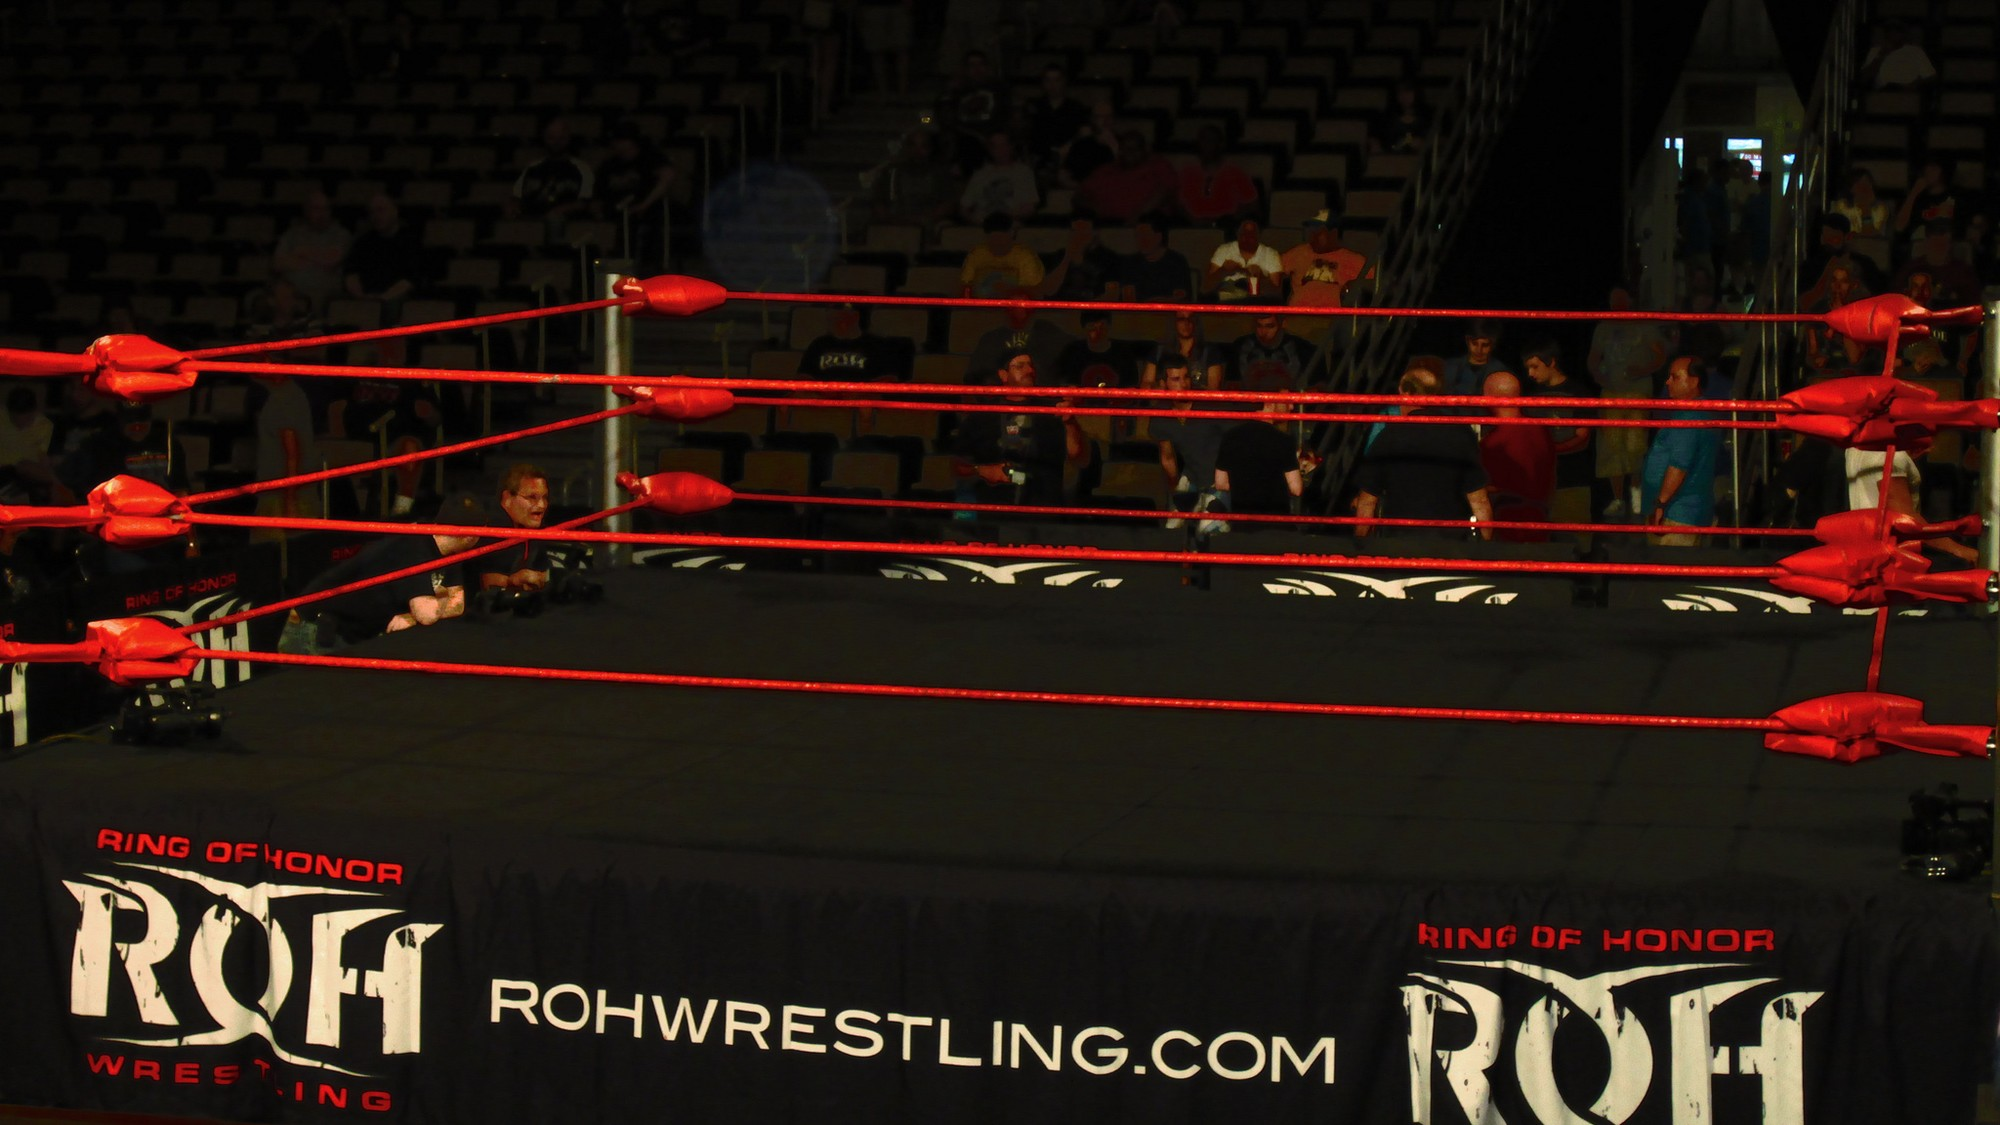 WWE's Rumored Ring of Honor Buyout, and the Value of History